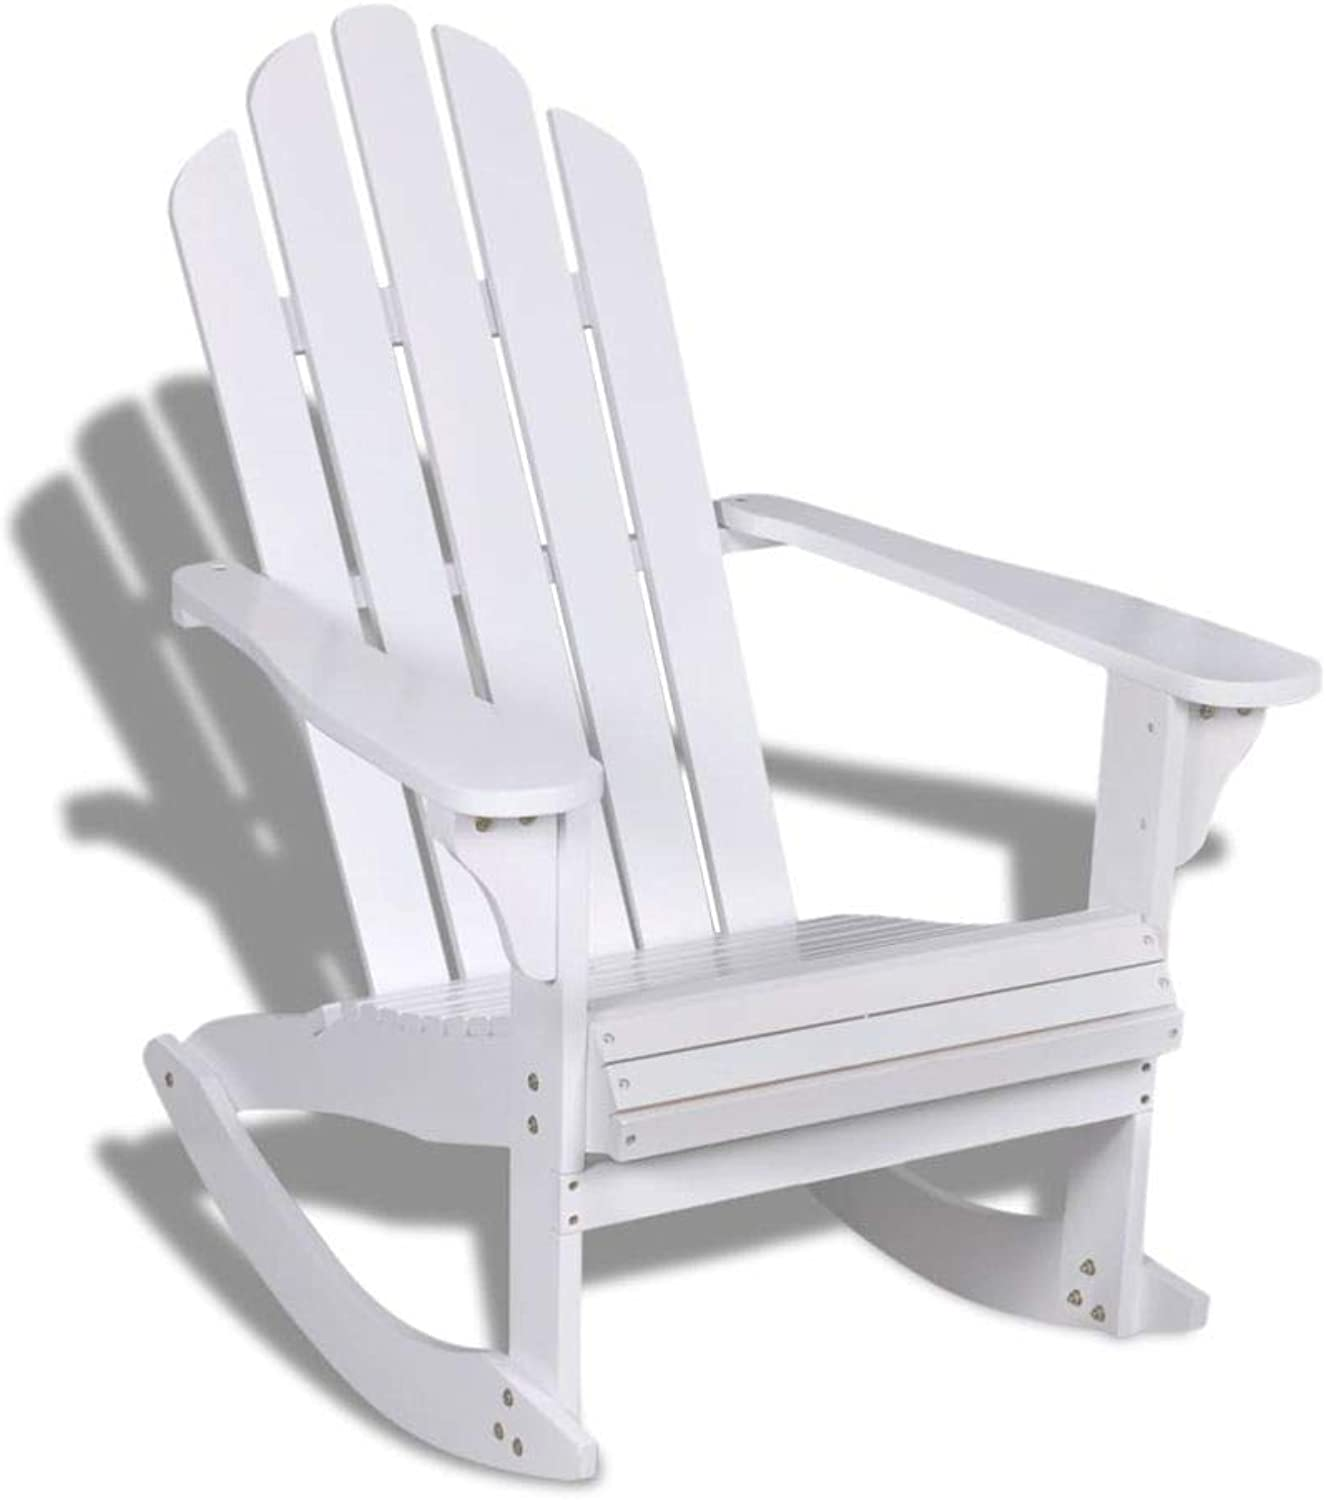 VidaXL Rocking Chair Wooden Slat White Outdoor Indoor Living Garden Patio Home